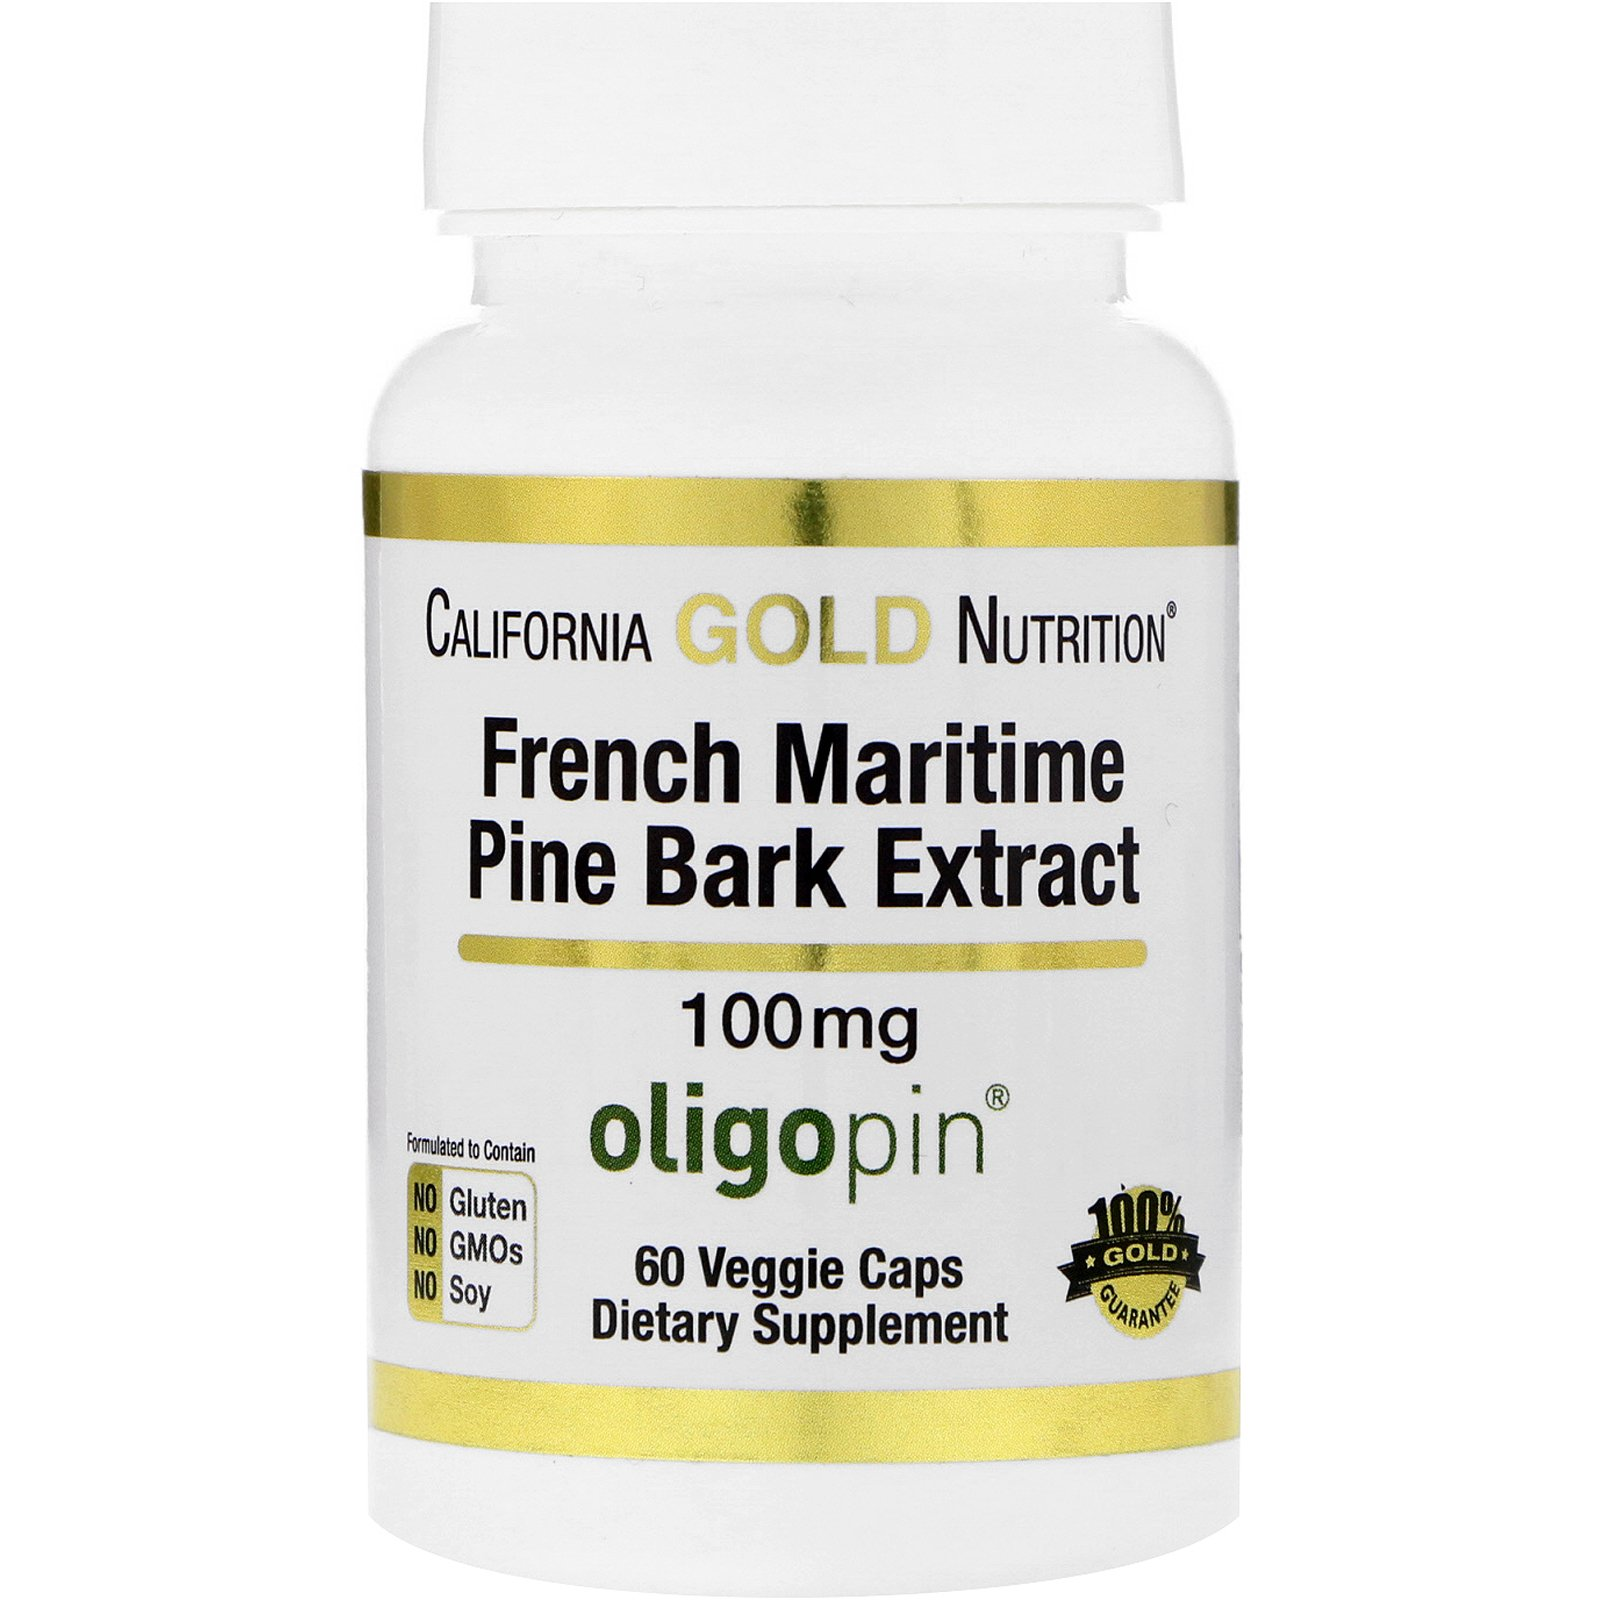 California Gold Nutrition, French Maritime Pine Bark Extract, Oligopin, Antioxidant Polyphenol, 100 mg, 60 Veggie Caps